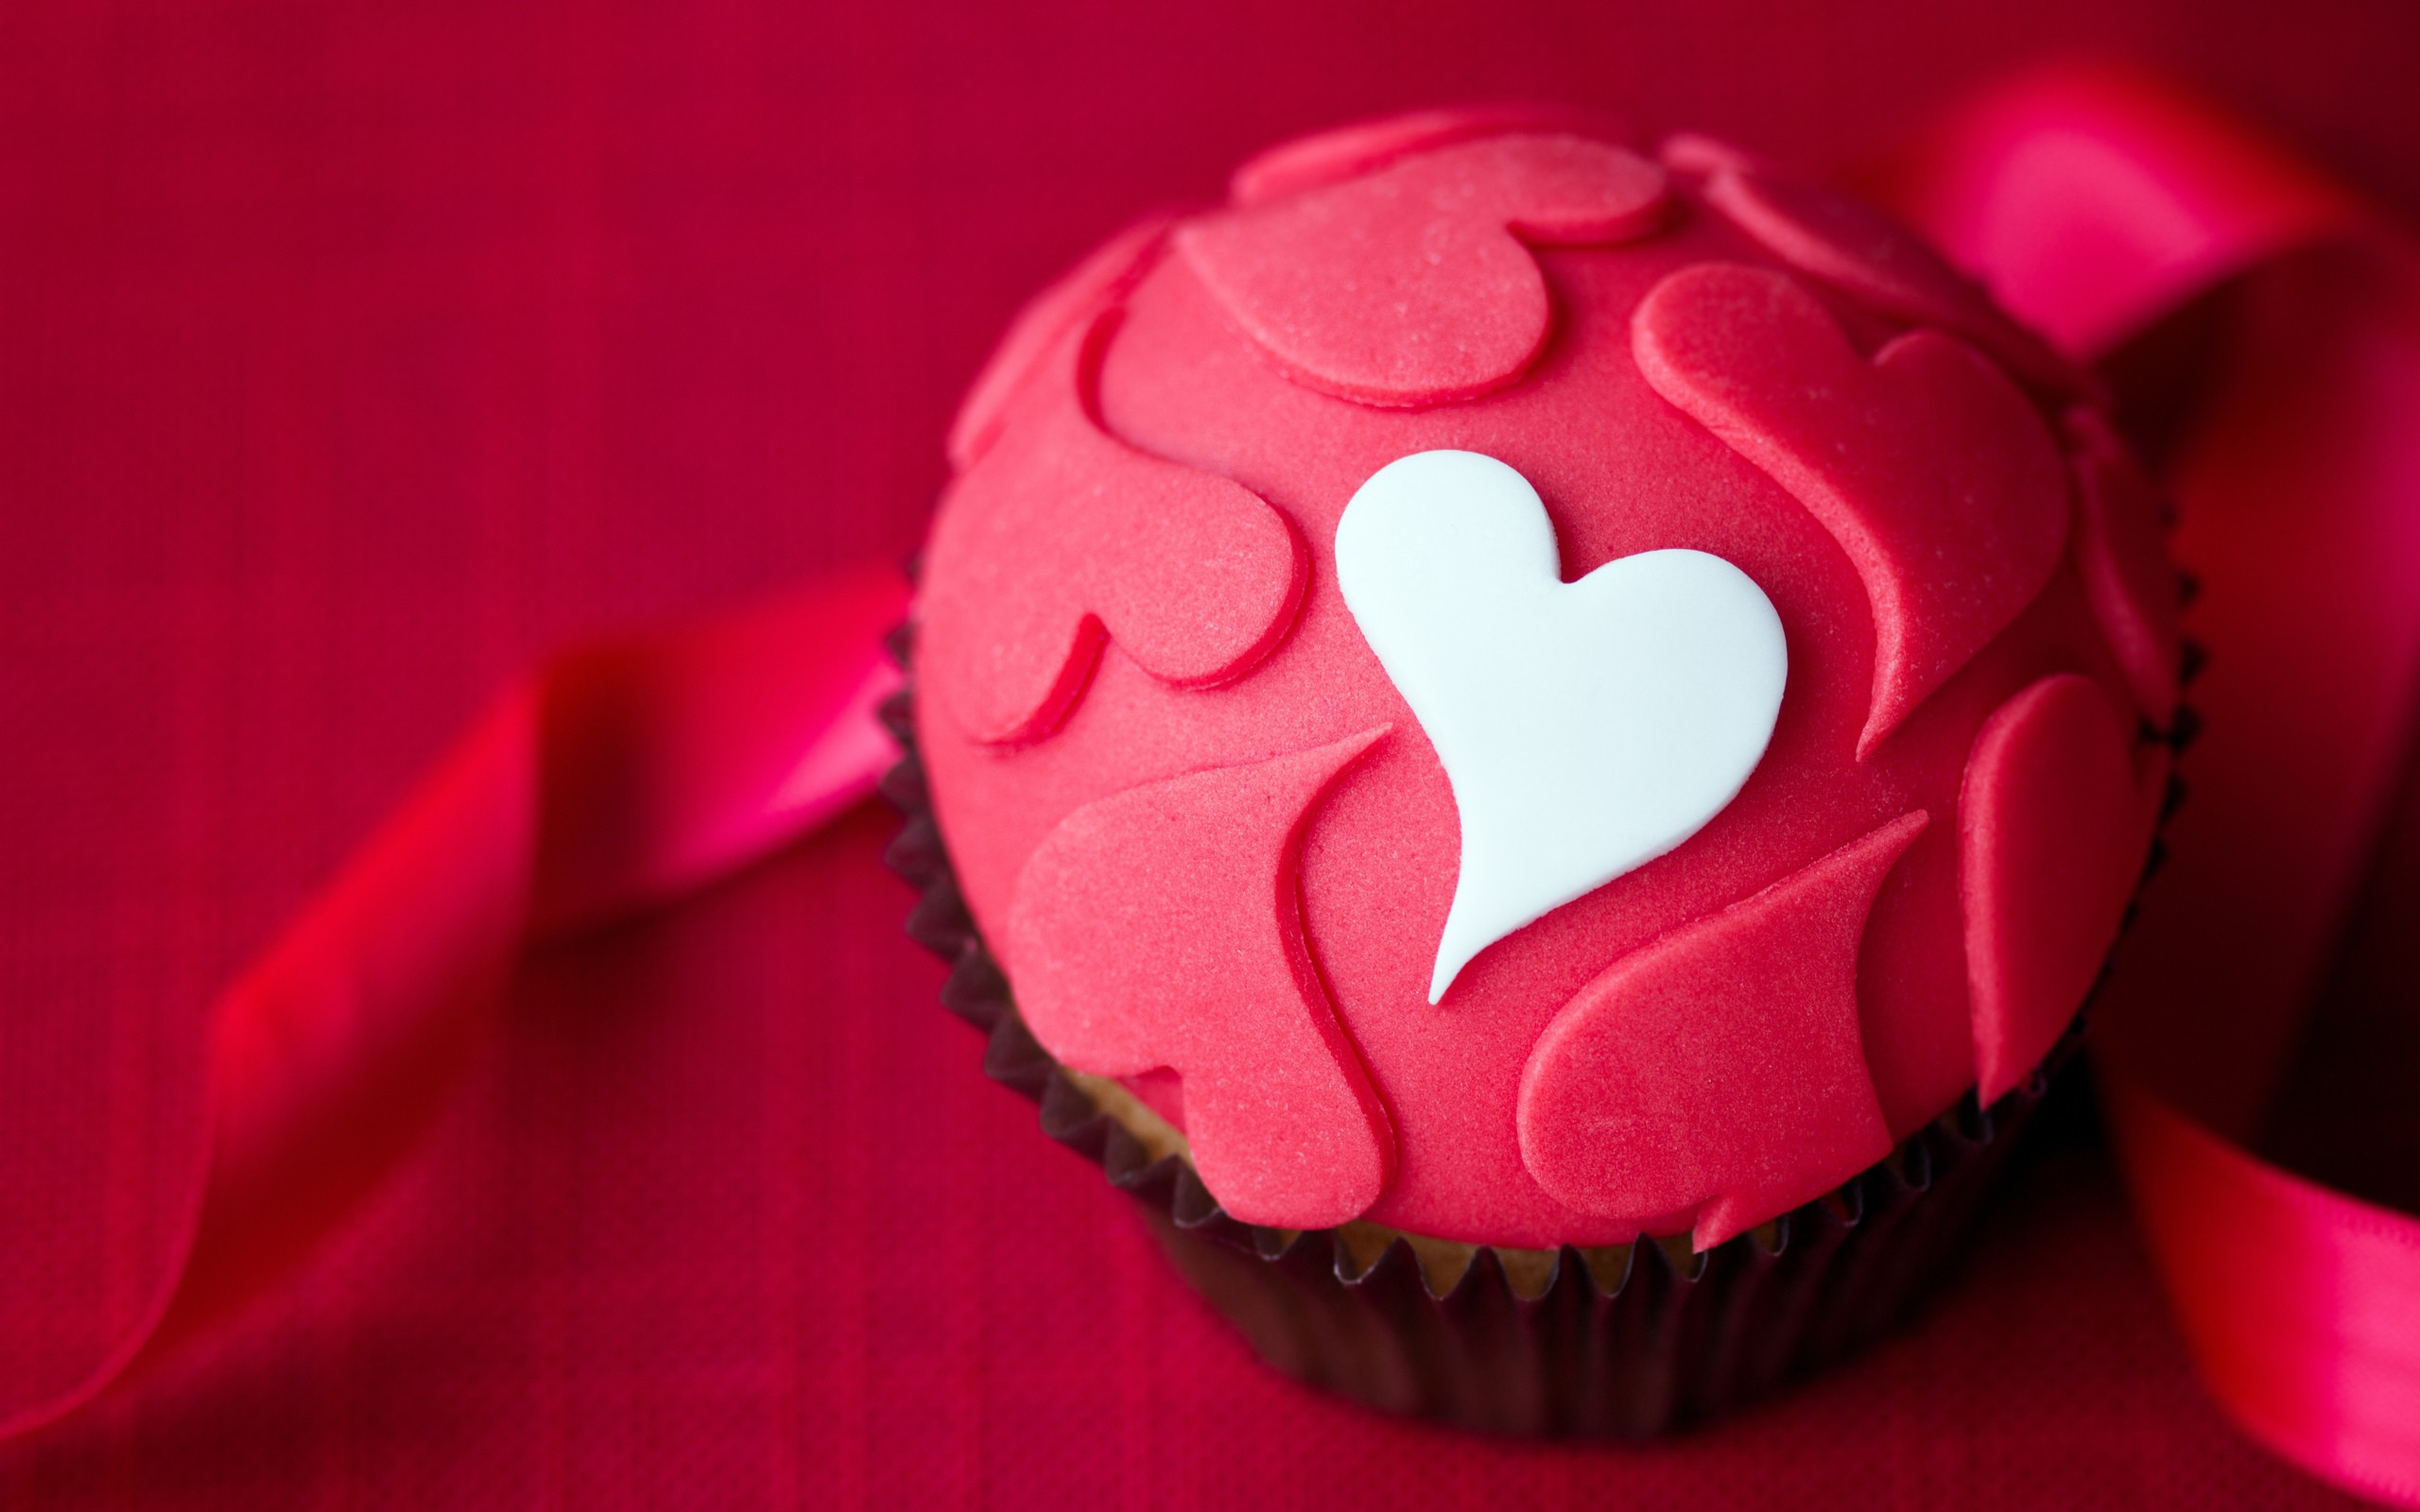 the cake for valentine's day wallpapers and images - wallpapers